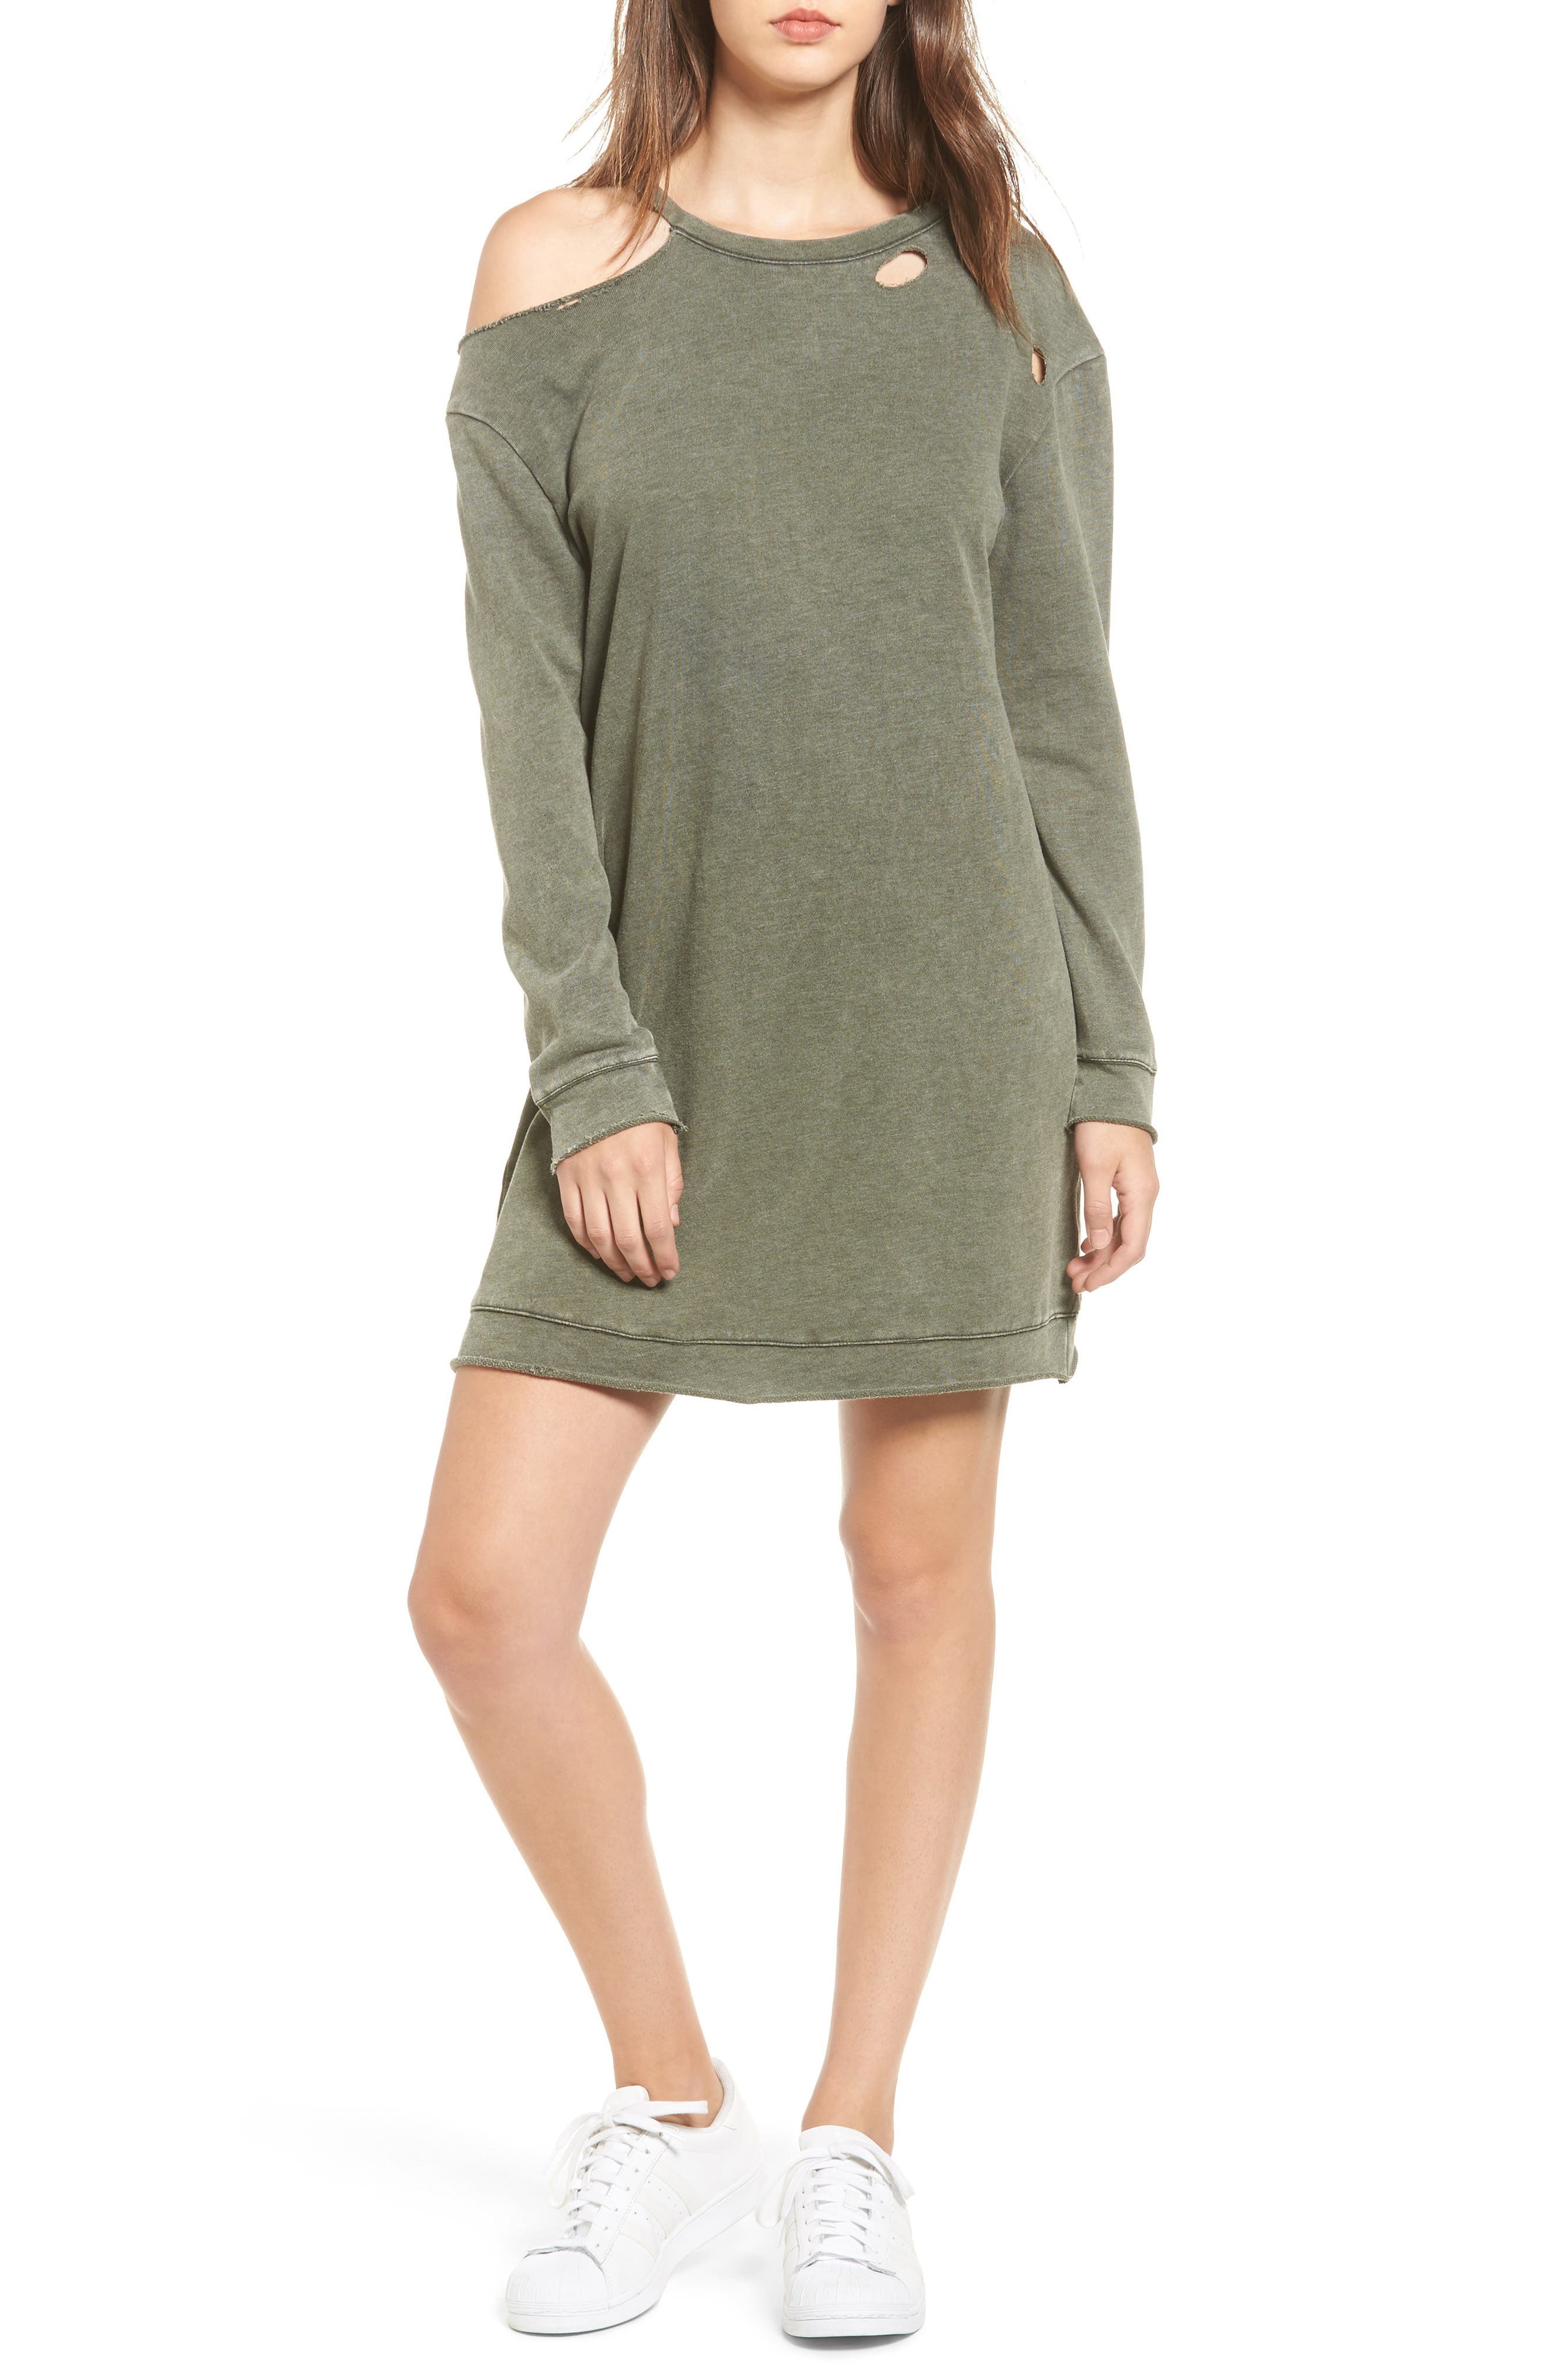 Love, Fire Ripped Sweatshirt Dress